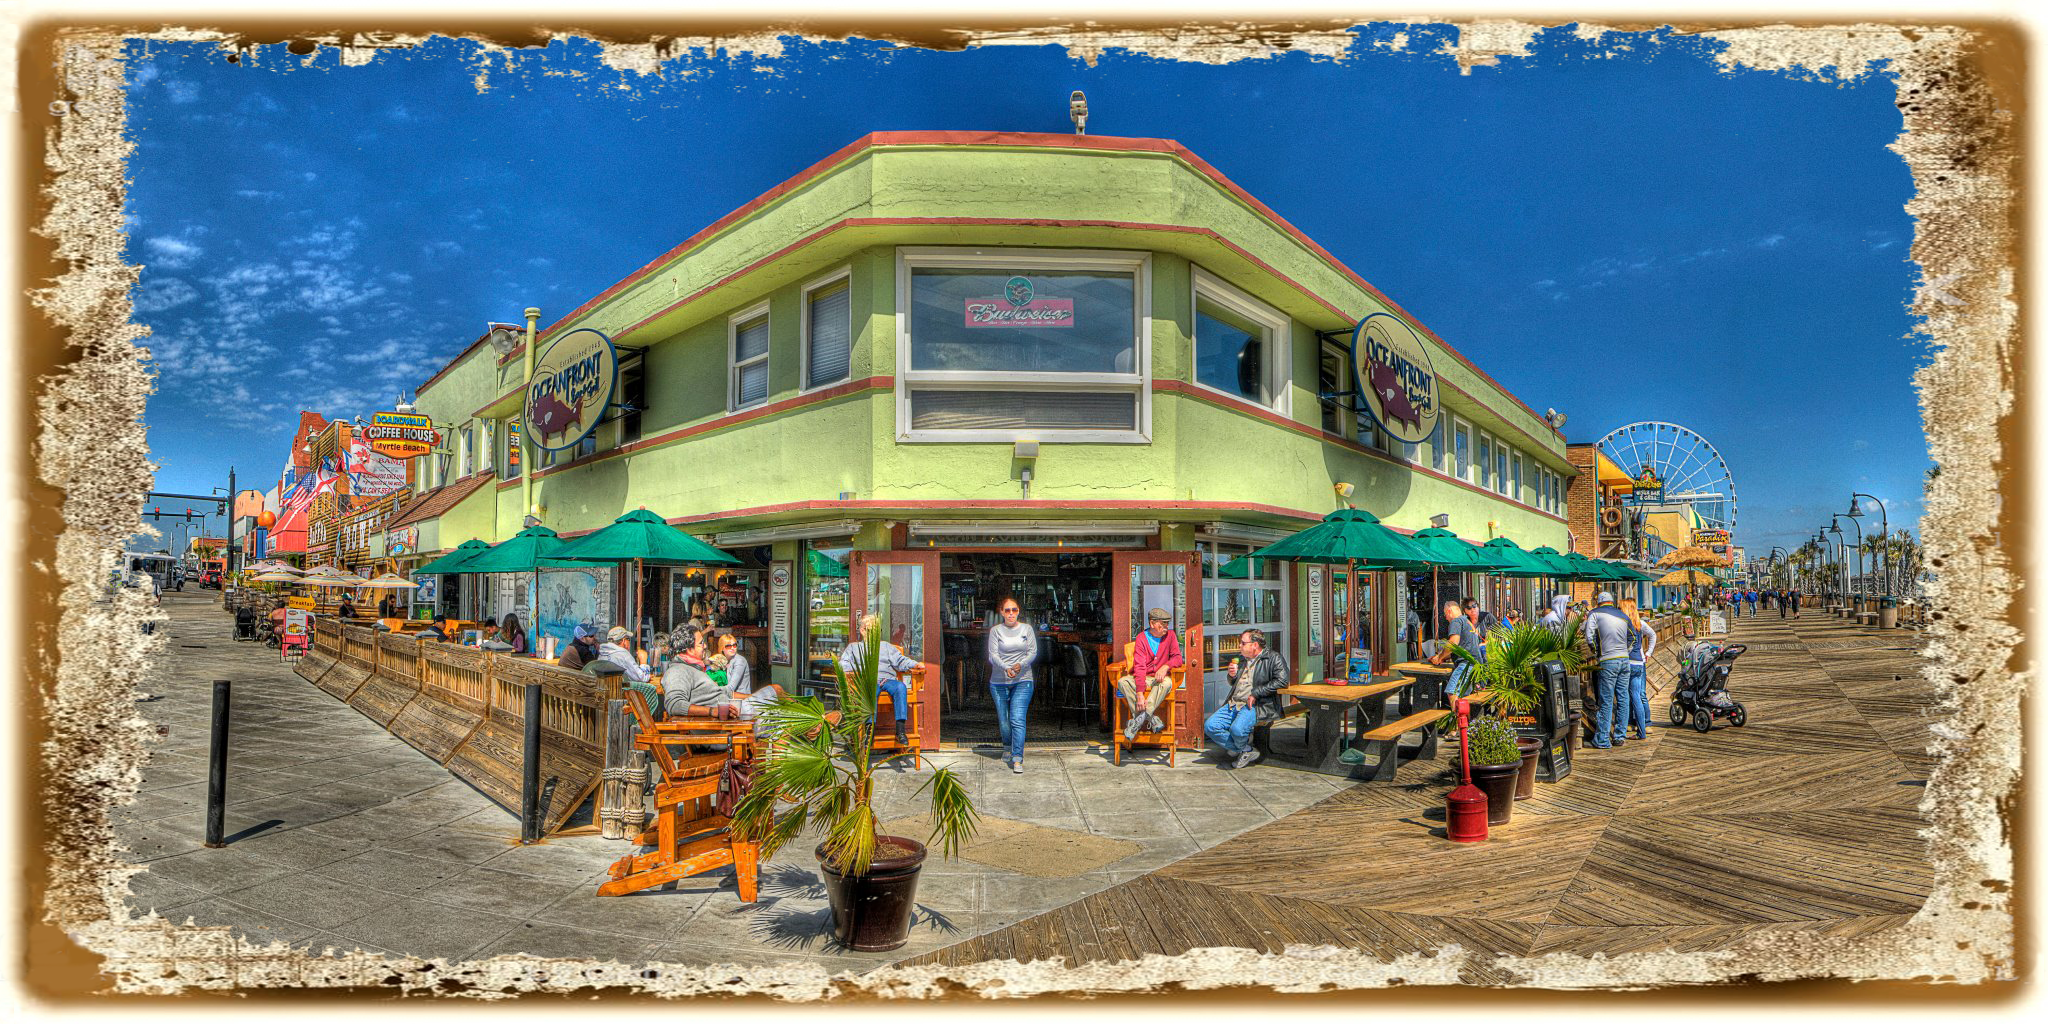 Oceanfront Bar & Grill Storefront